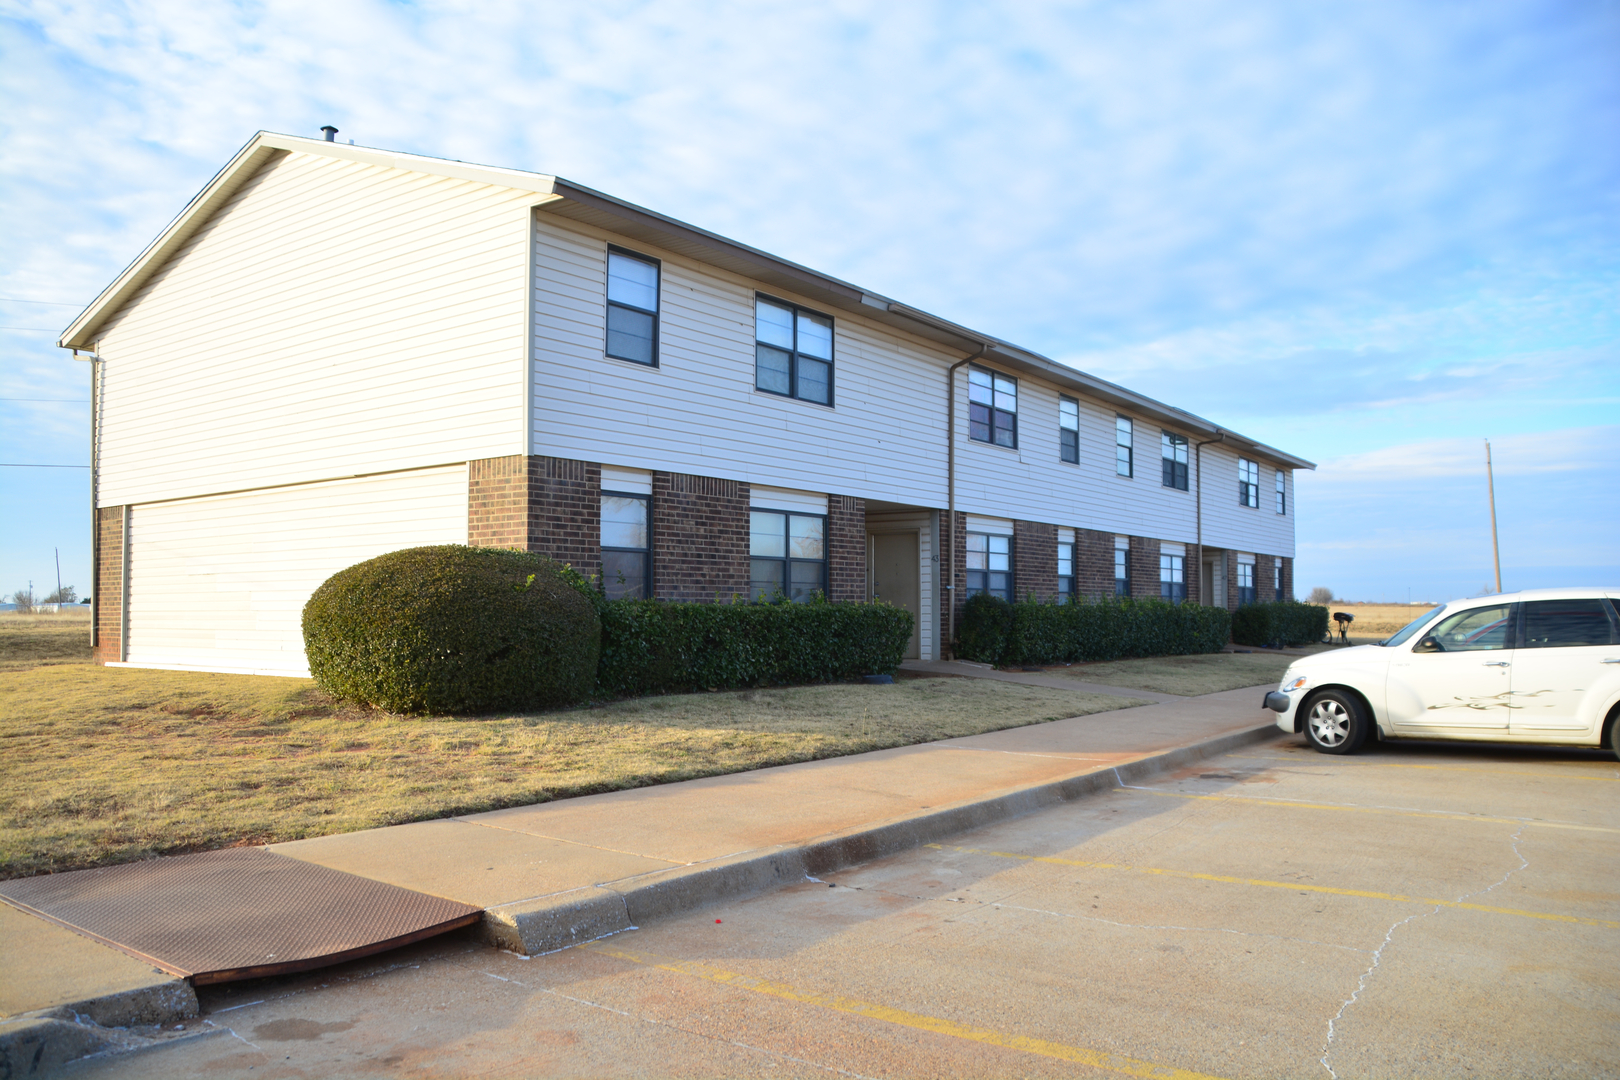 Image of Park Lane Apartments in Marlow, Oklahoma